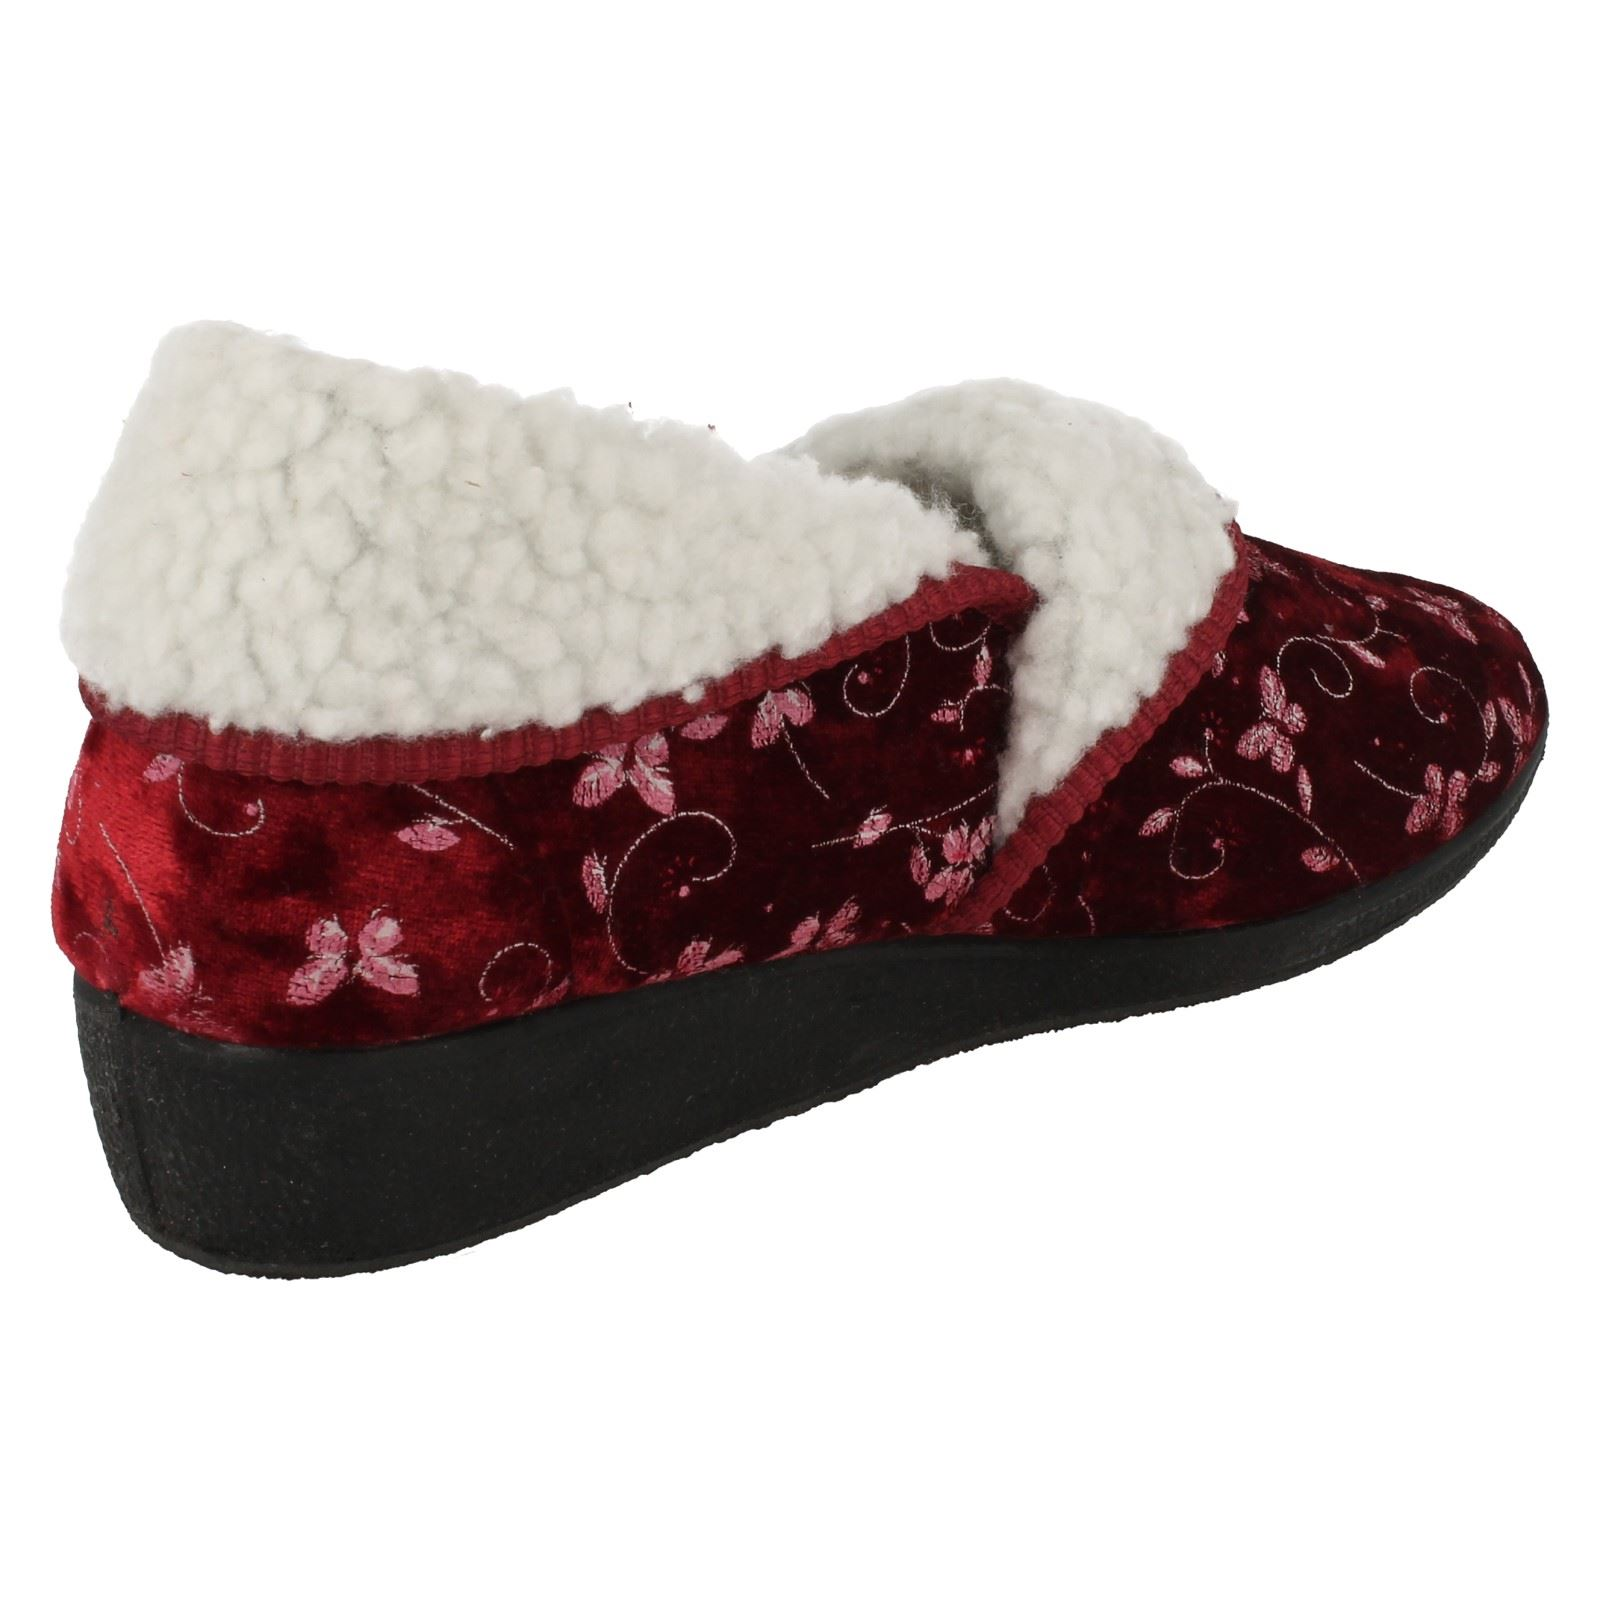 Ladies-Four-Seasons-House-Slippers-Edith thumbnail 7